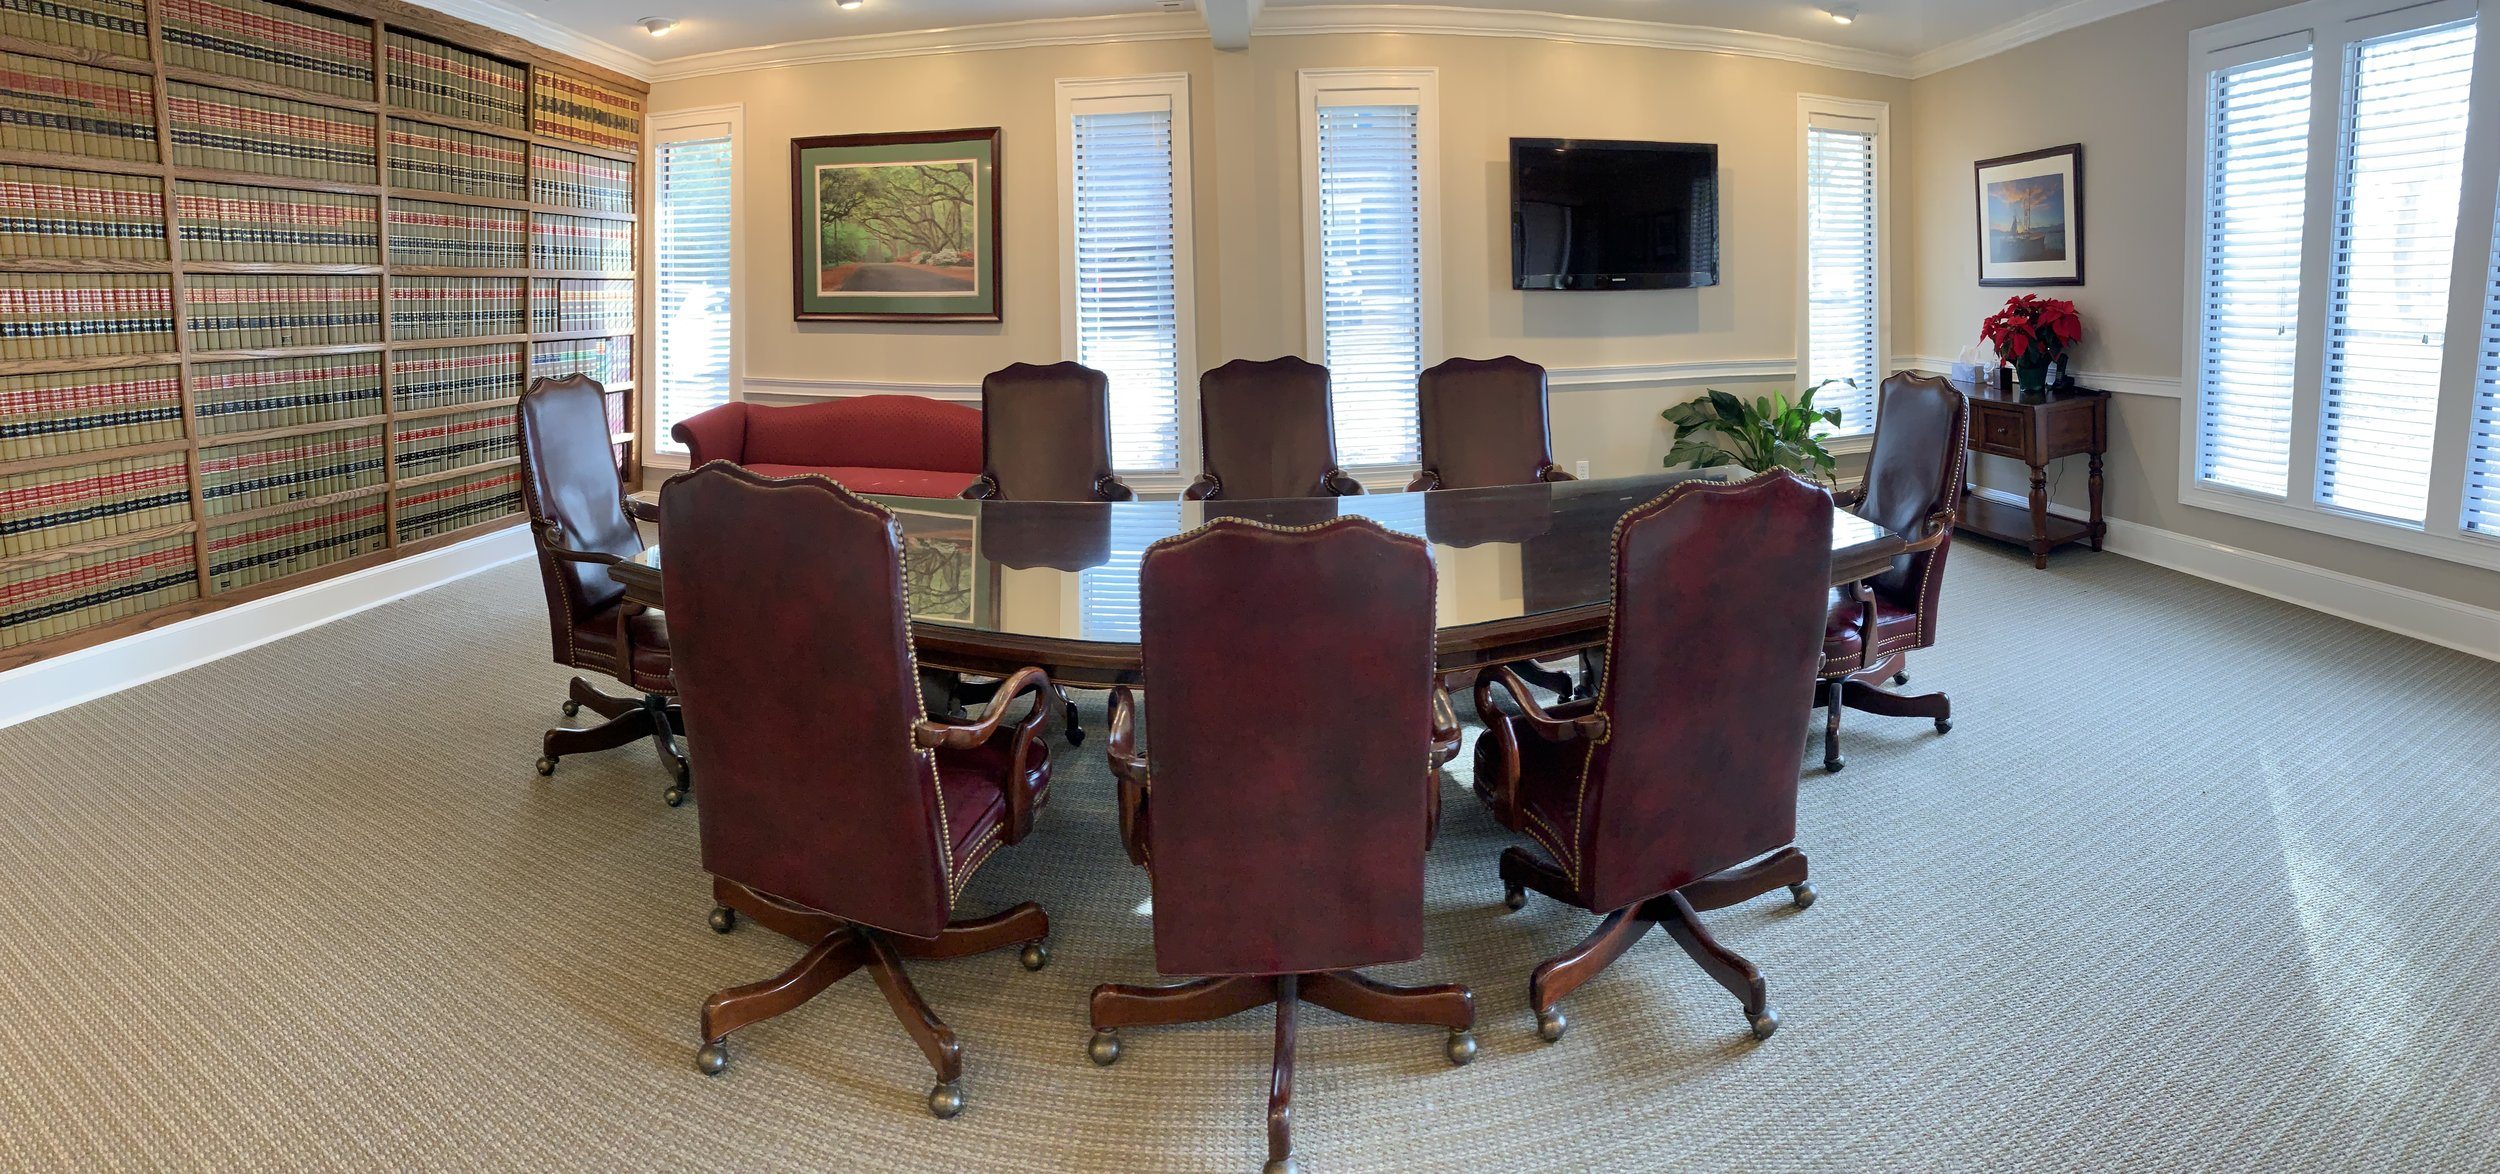 Tallahassee - Main Conference Room